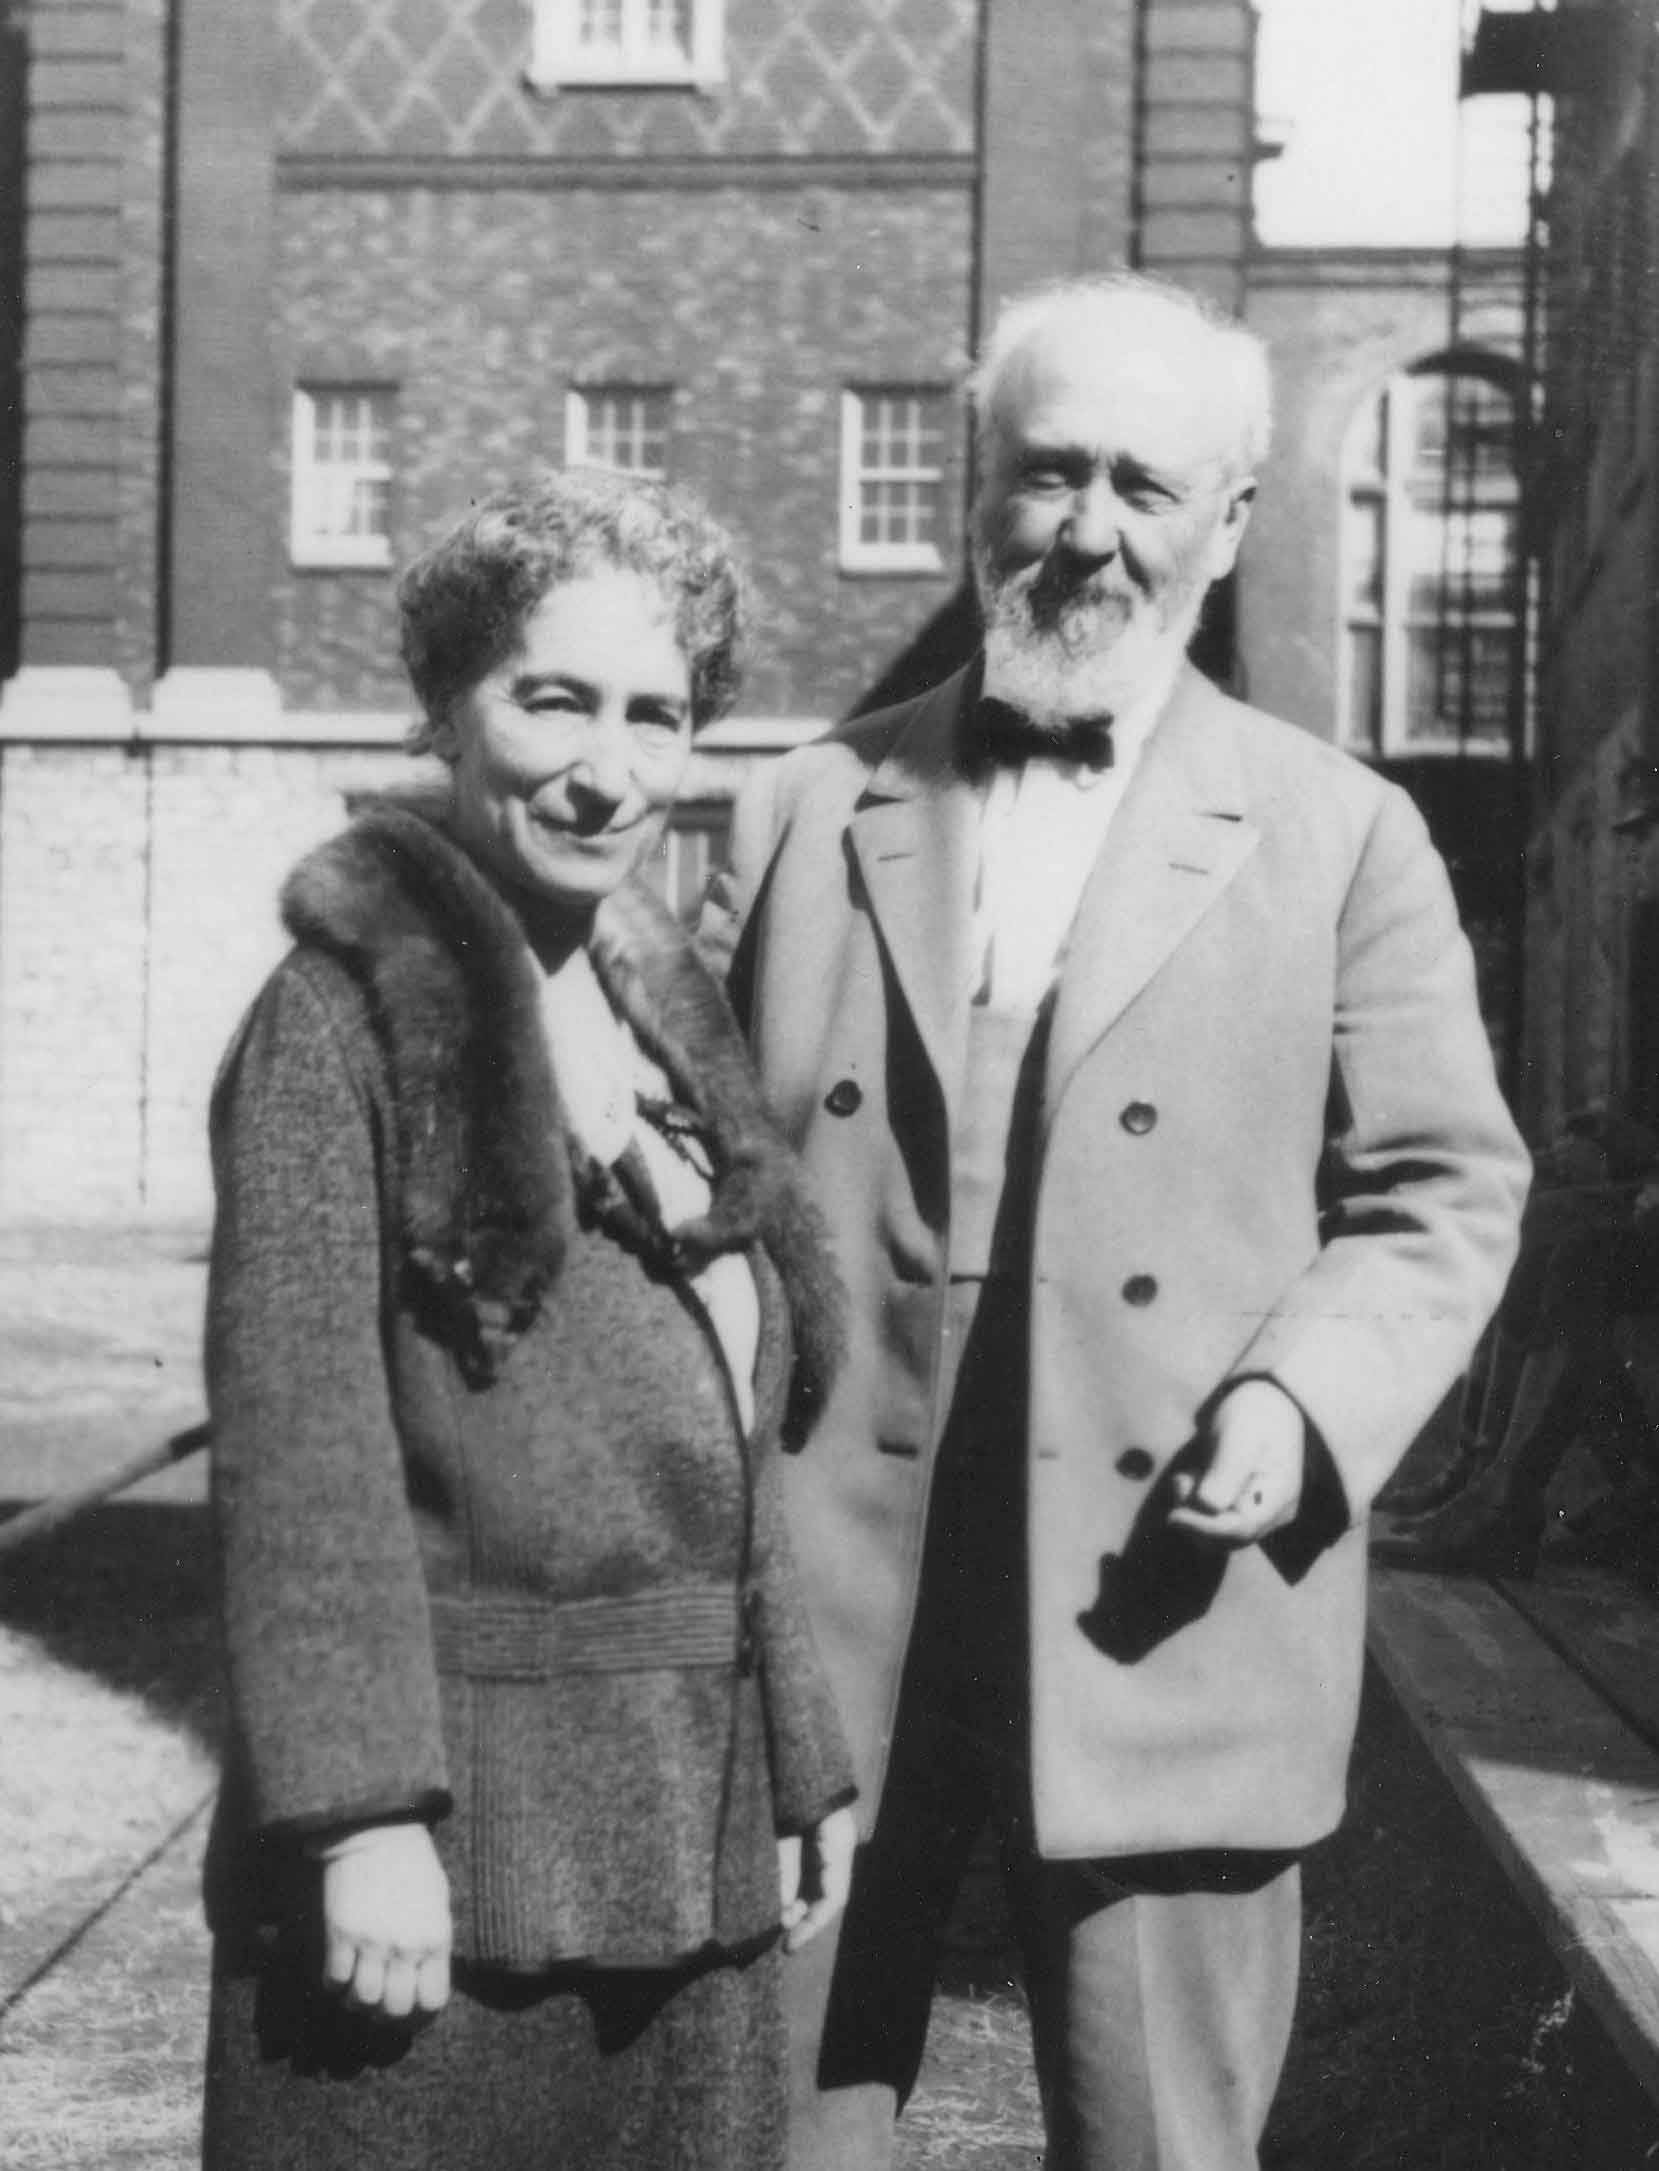 Mary Kimball Morgan and Bernard Maybeck